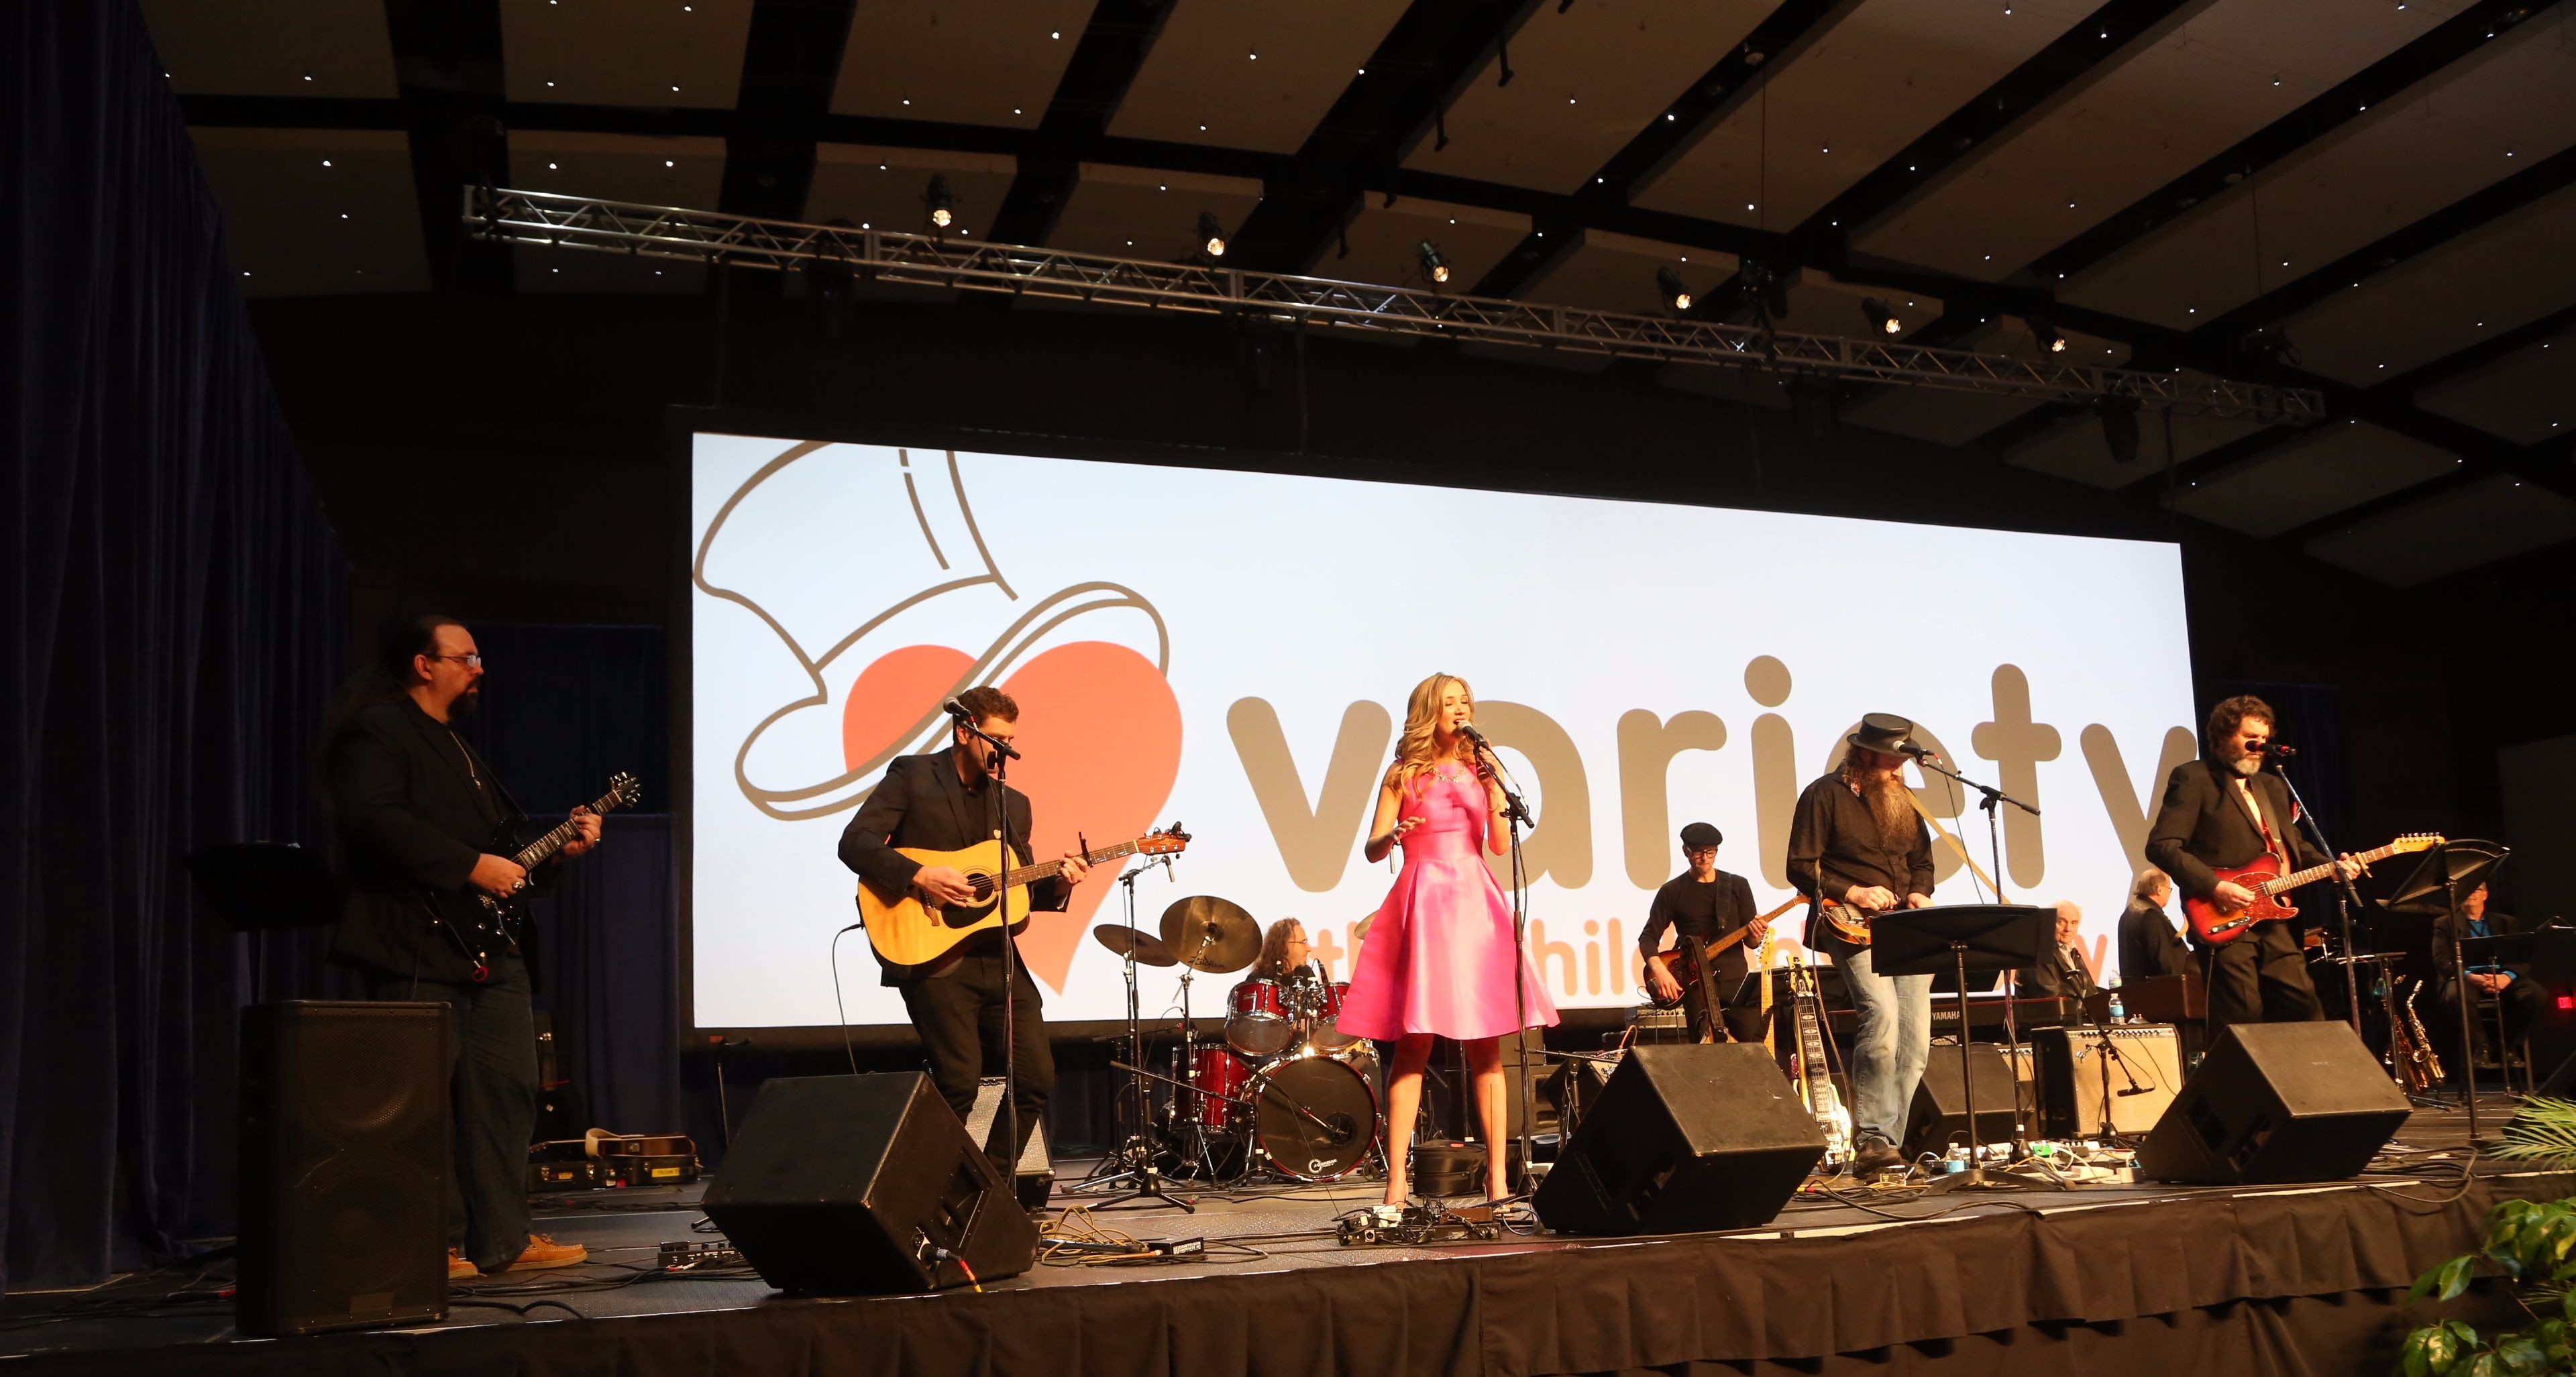 Country star Sarah Darling performs at the Variety Telethon broadcast on ABC5